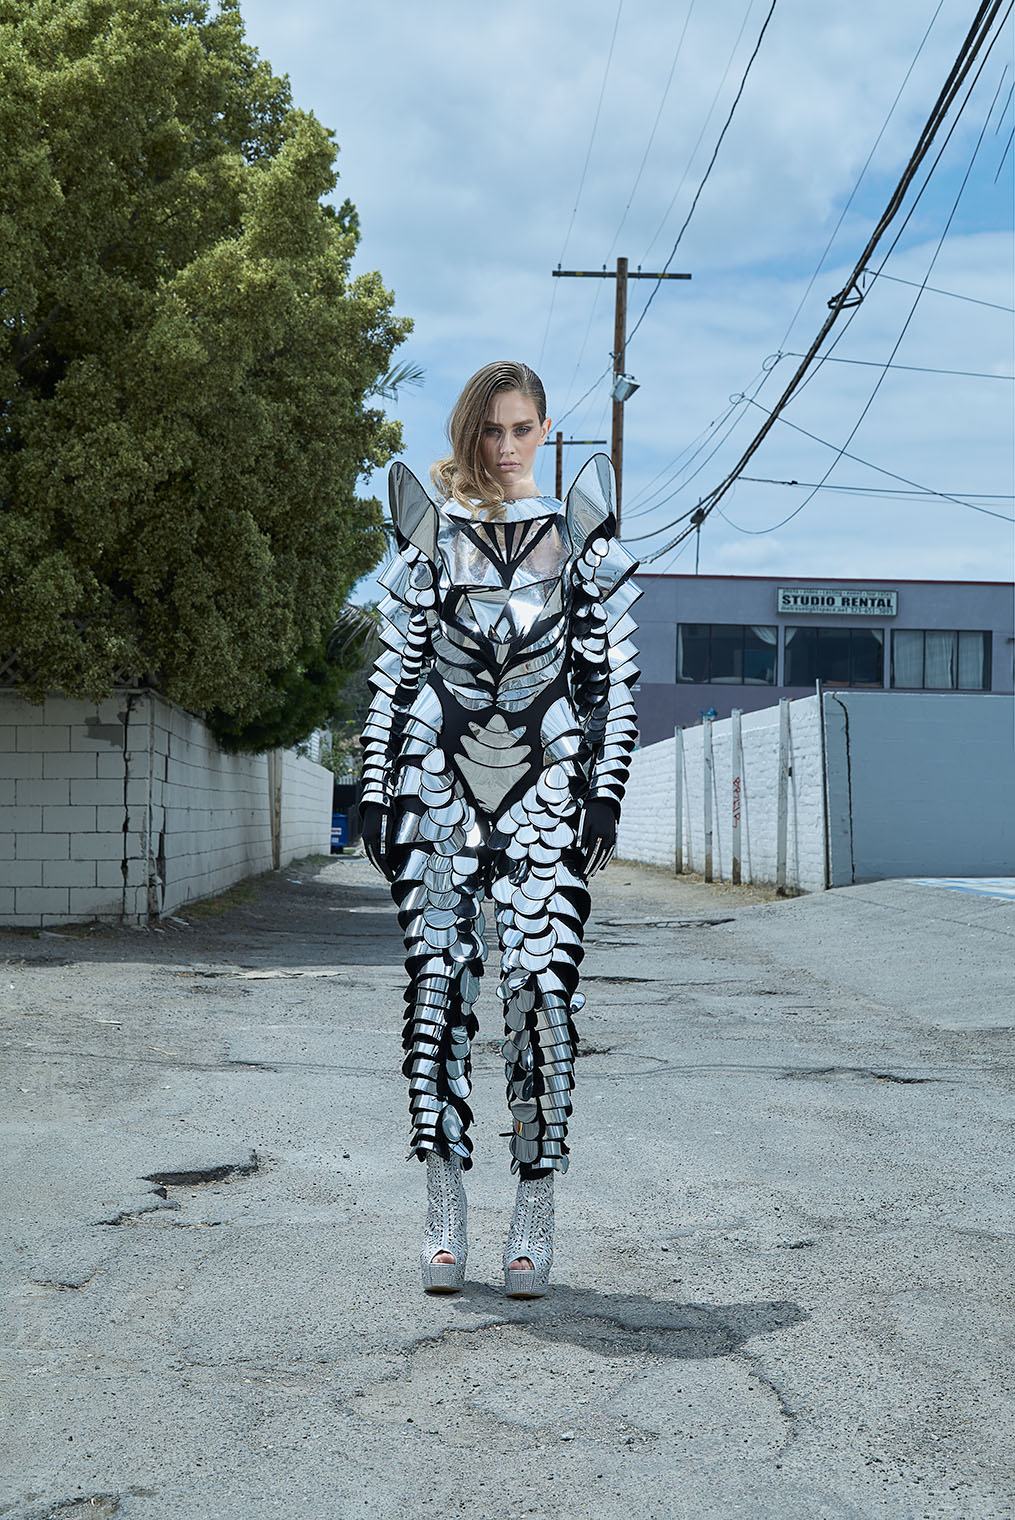 girl in armor style avantarde fashion outfit - best photographers Los Angeles